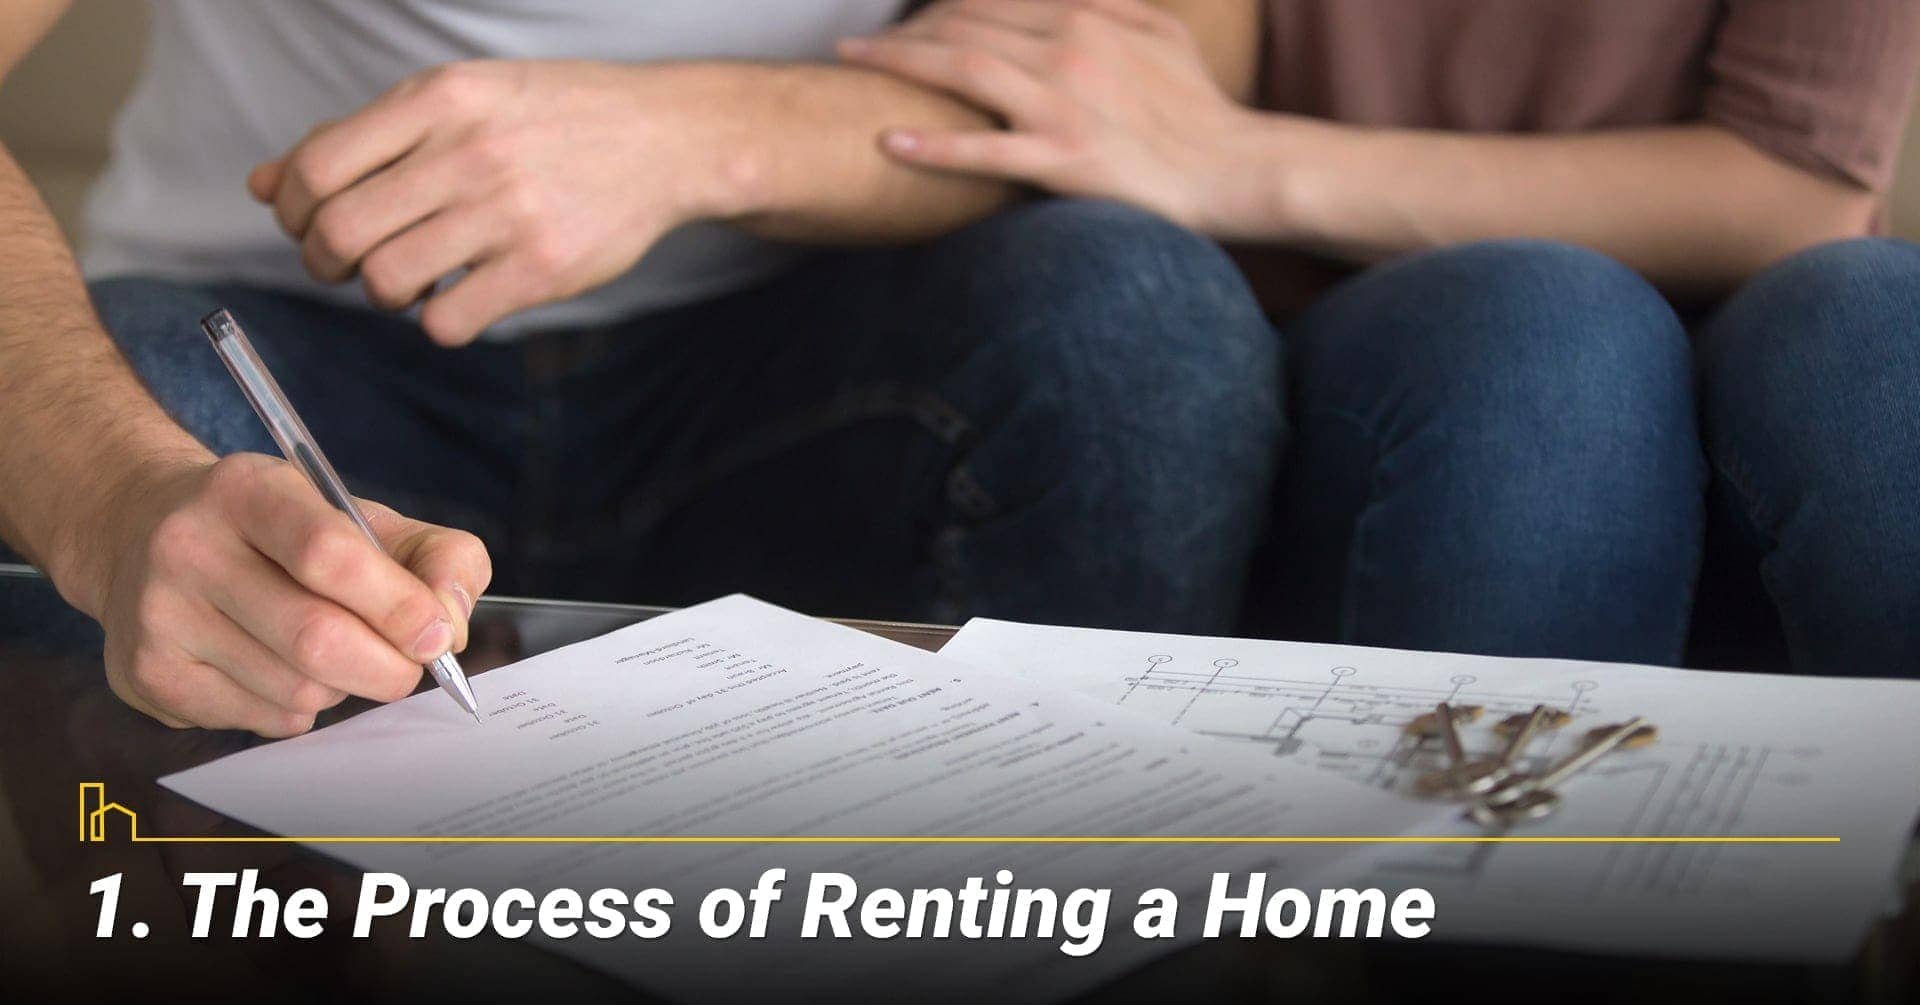 The Process of Renting a Home, steps to rent out your home